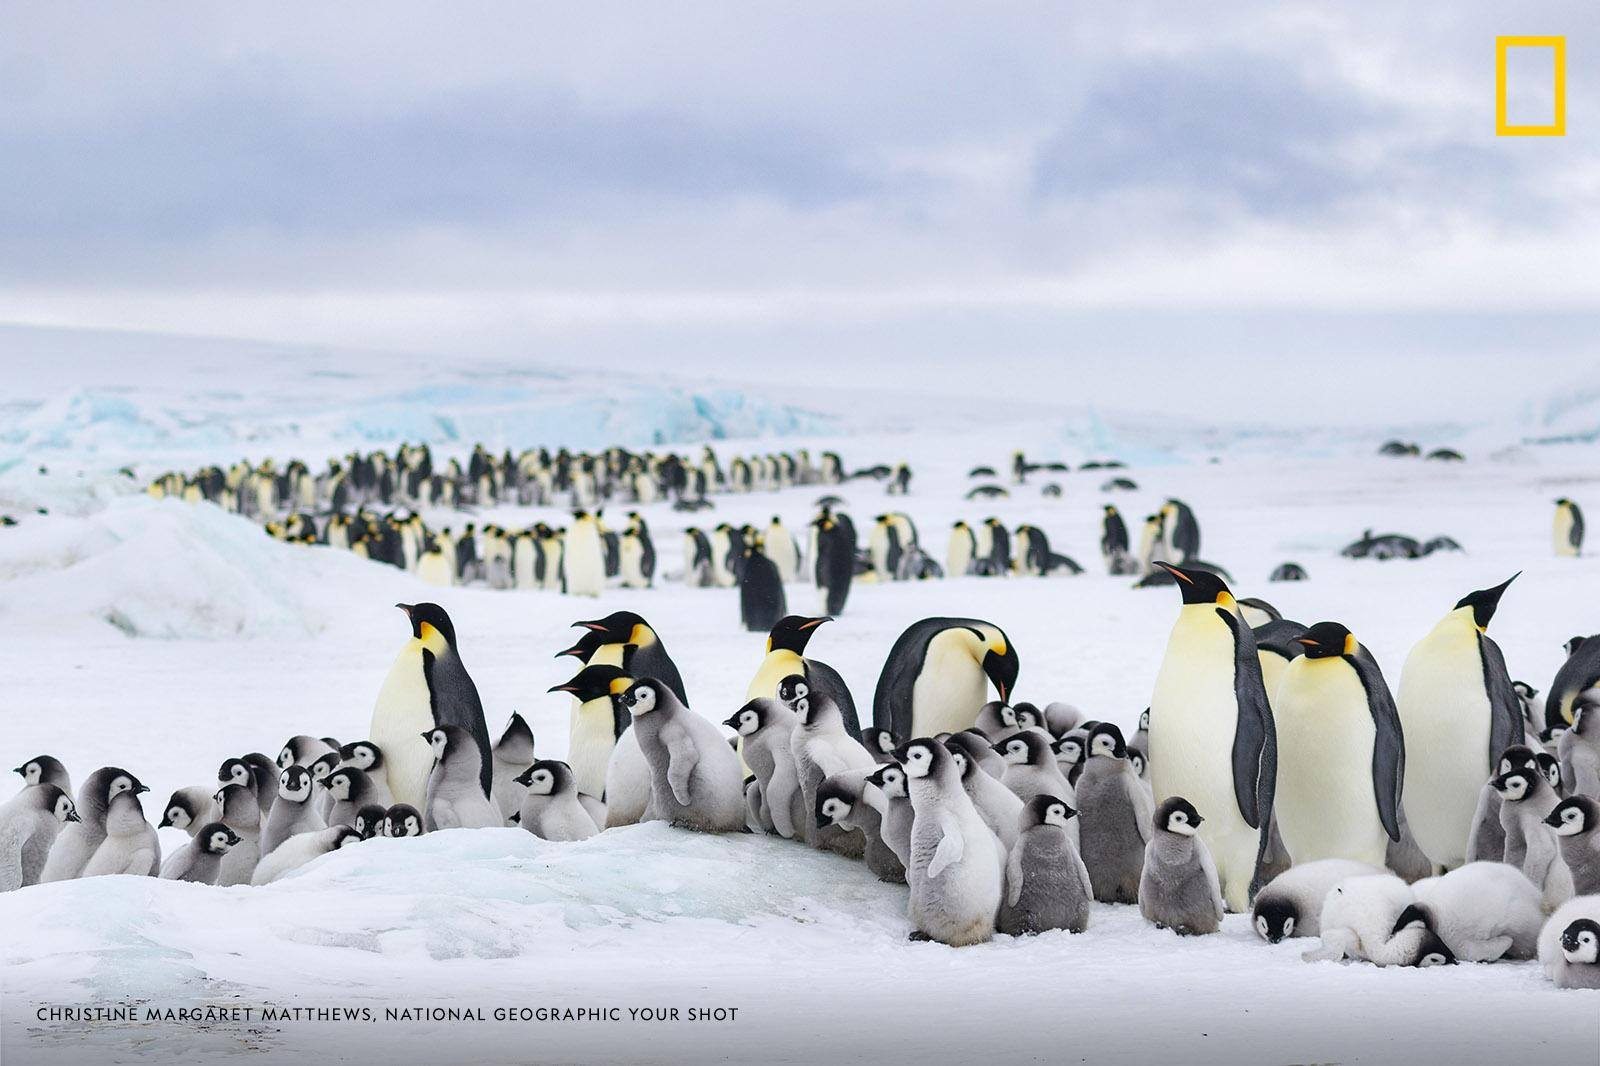 """After traveling to the ice sheet by helicopter, we had to walk about two miles to reach the Emperor penguin colony,"" writes photographer Christine Margaret Matthews. ""It was possible to hear the chicks before you actually got there."" https://on.natgeo.com/2Gr5Tnq"